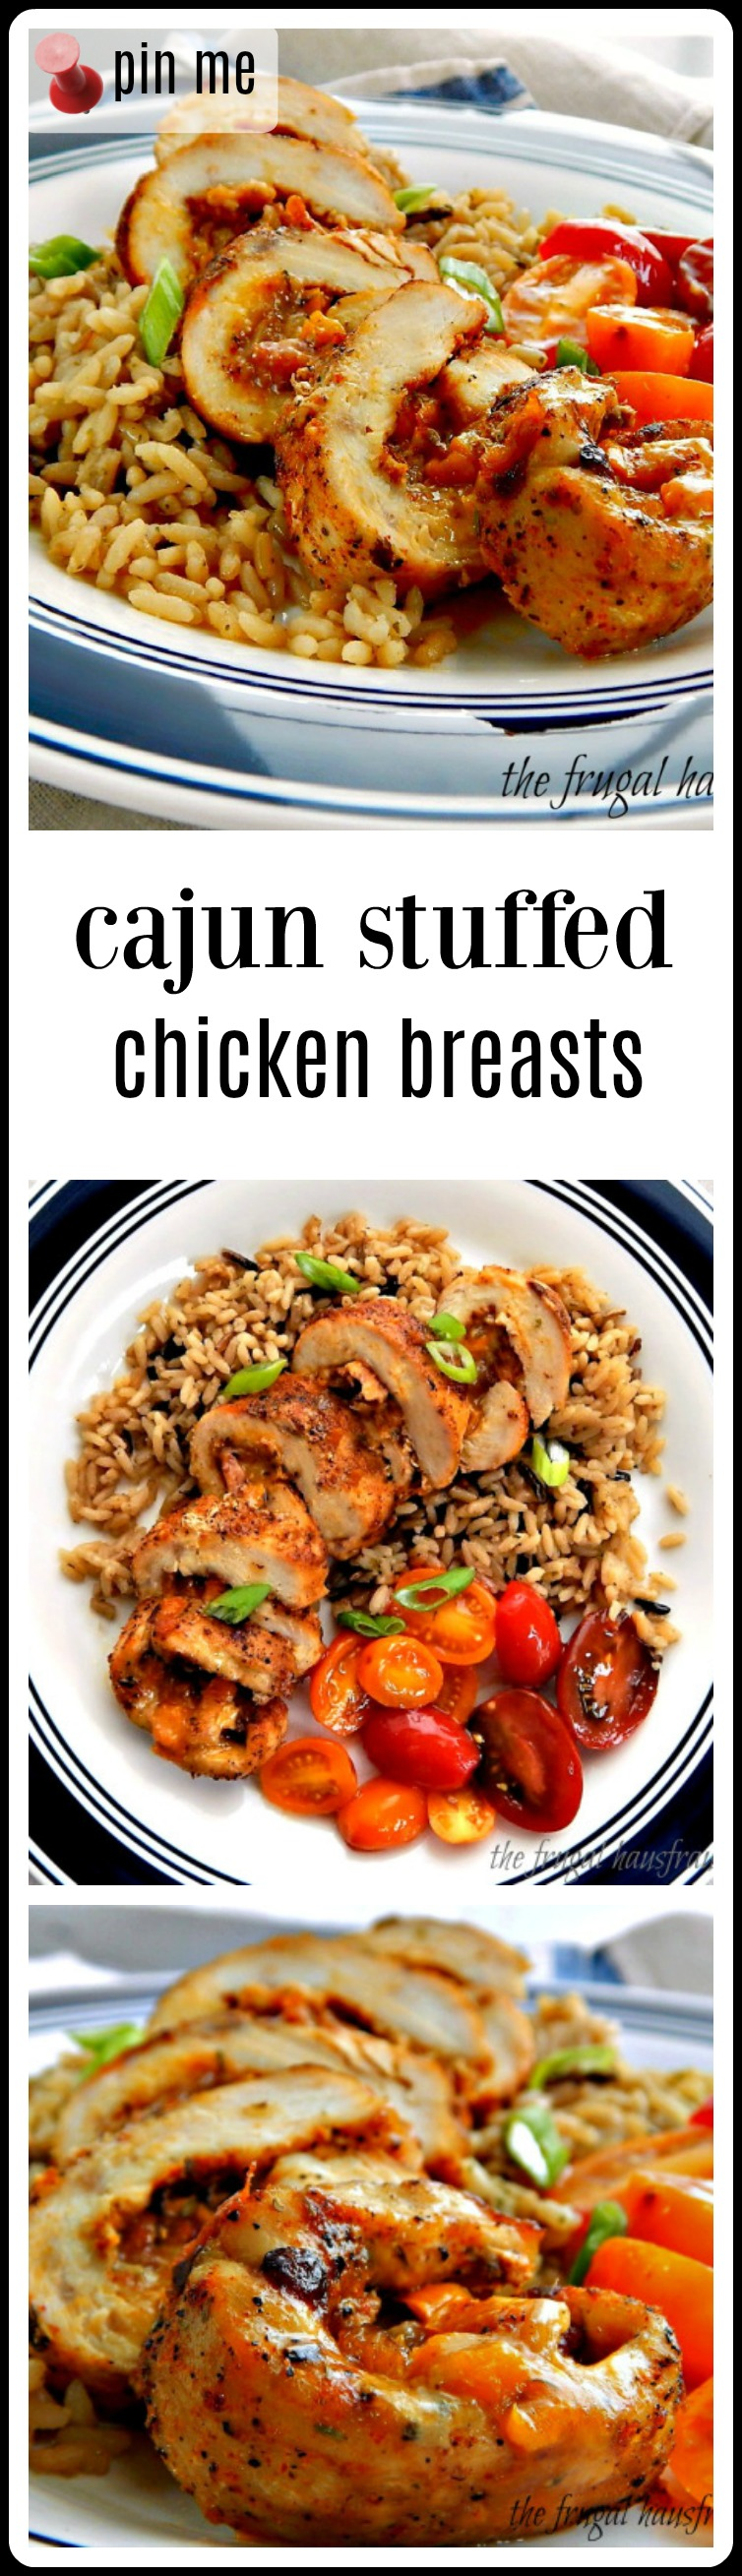 Cajun Stuffed Chicken Breast - stuffed with the classic New Orleans' Trinity and Cheese! Ya gotta have cheese!! Very do-able and surprisingly quick. #CajunStuffedChickenBreasts #StuffedChickenBreasts